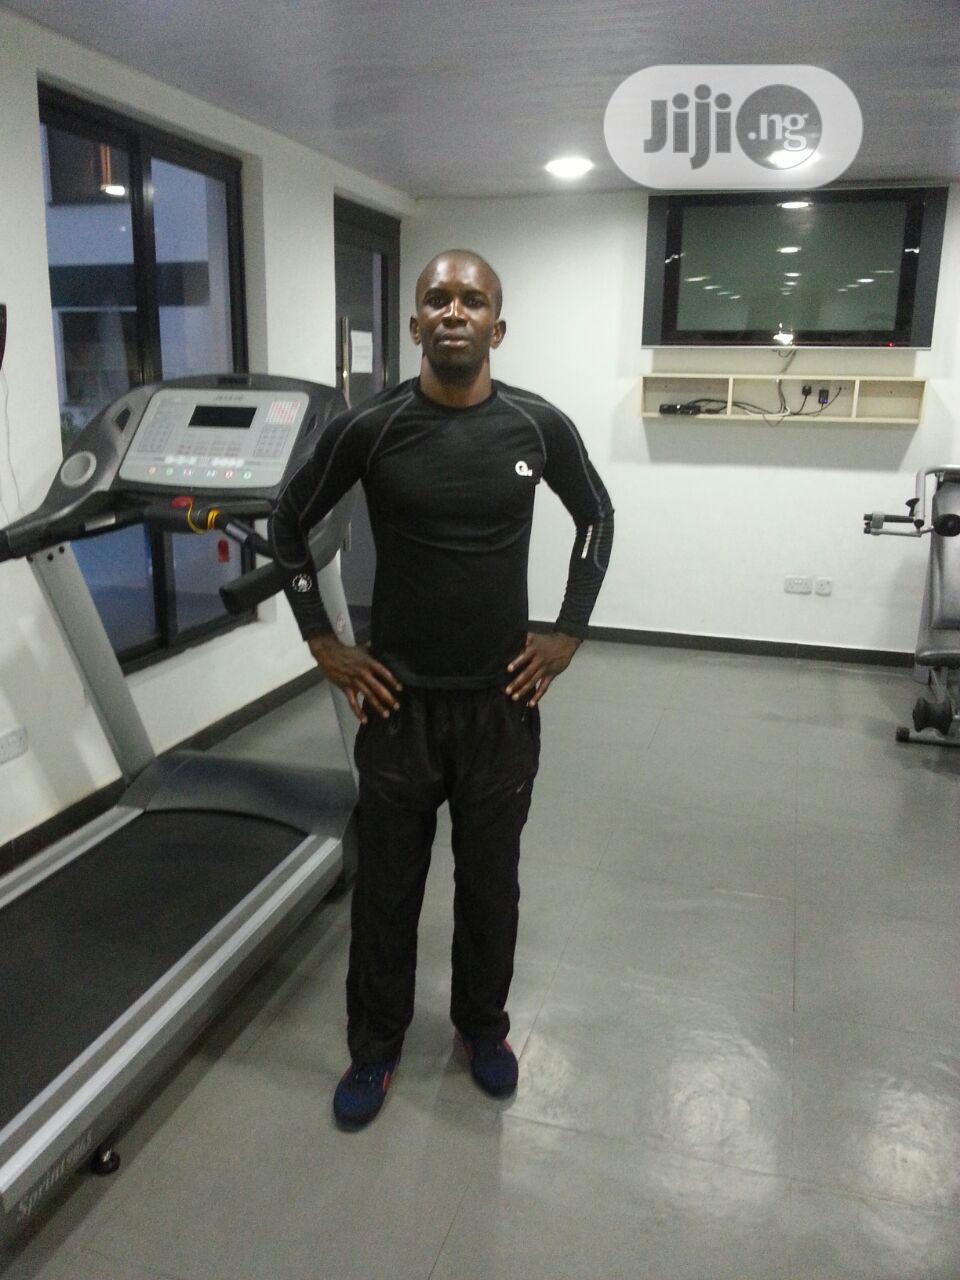 Certified Personal Trainer On Entire Body Workout Program.